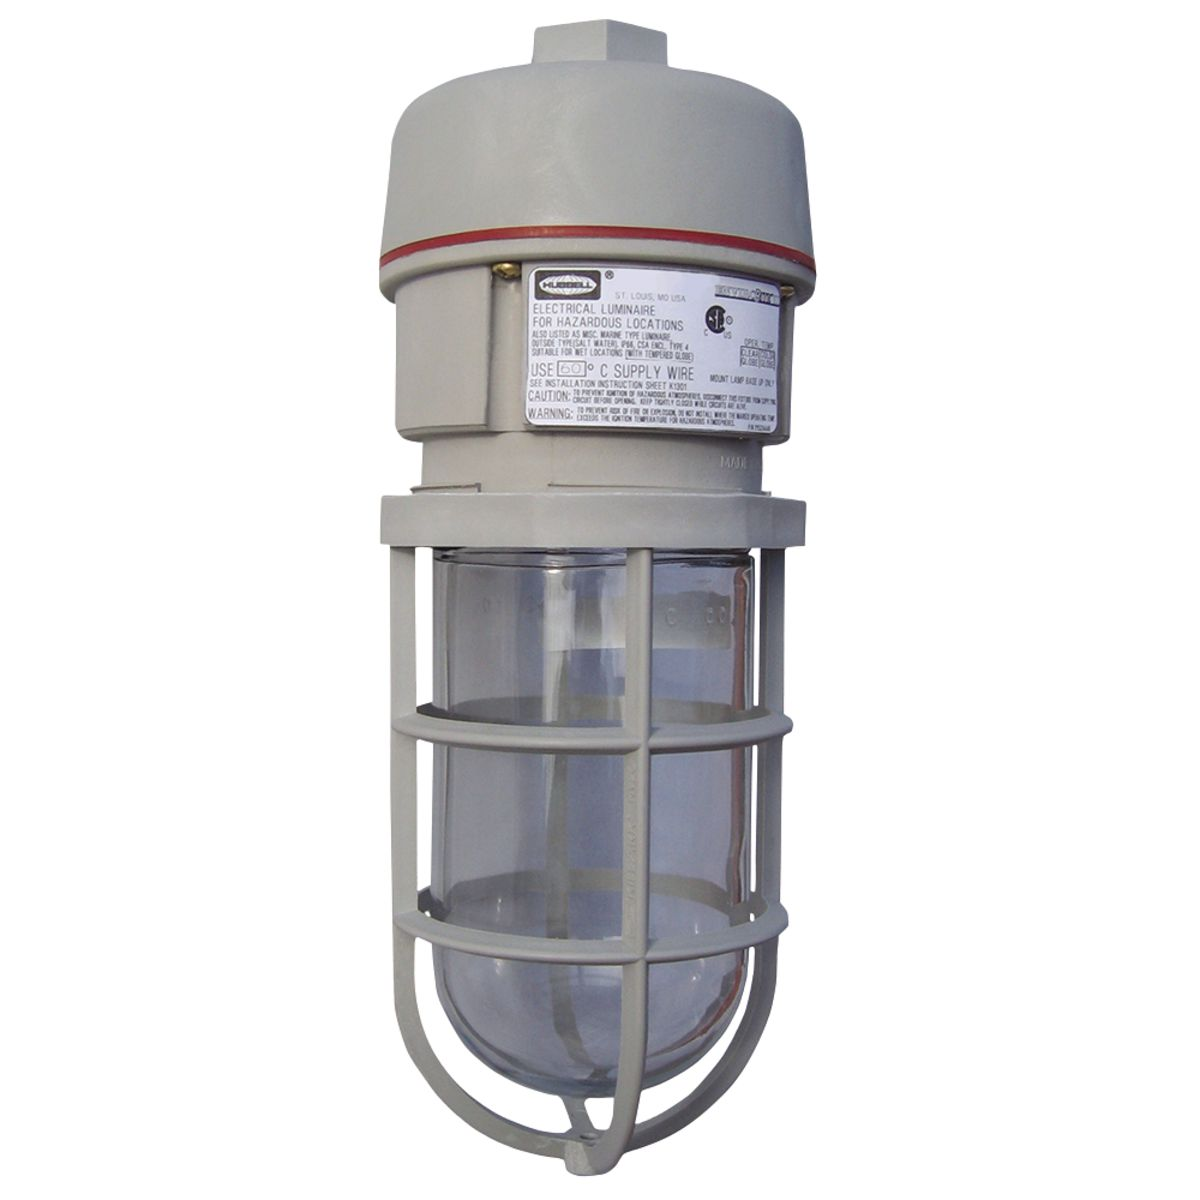 Vaportite NV2 Series. by Hubbell Industrial Lighting  sc 1 st  Hubbell & Vaportite NV2 Series | Enclosed u0026 Gasketed | Industrial Lighting ...